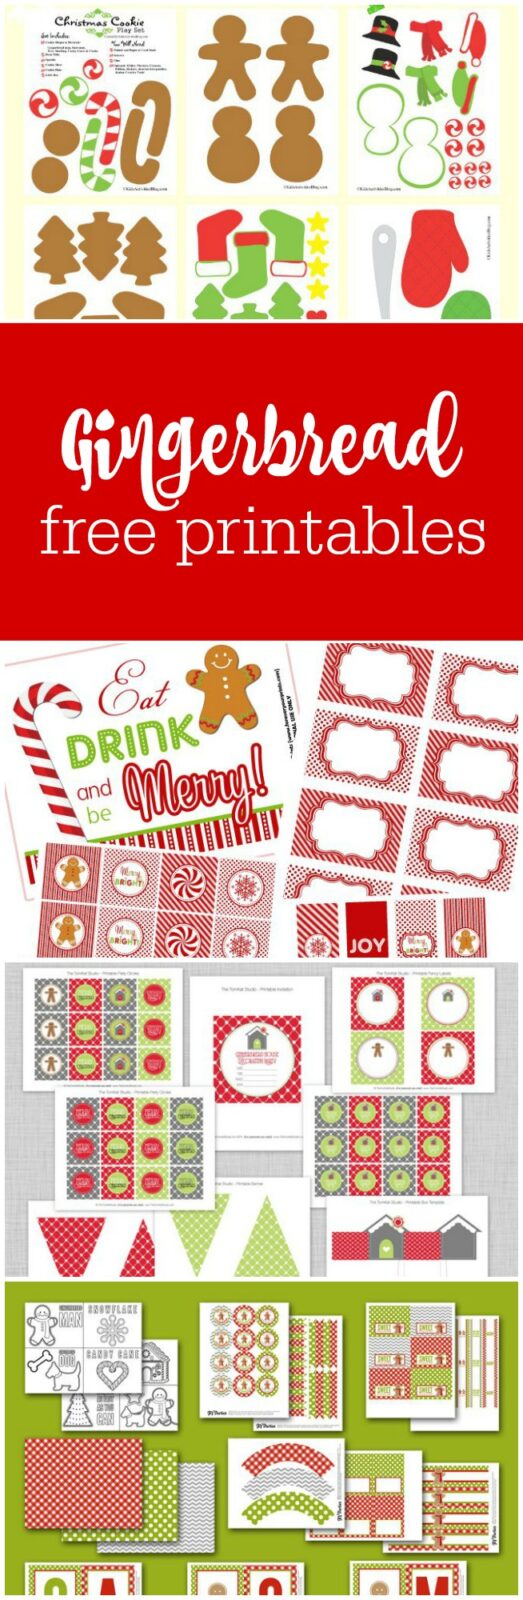 Gingerbread party free printables - includes full party collections curated by The Party Teacher